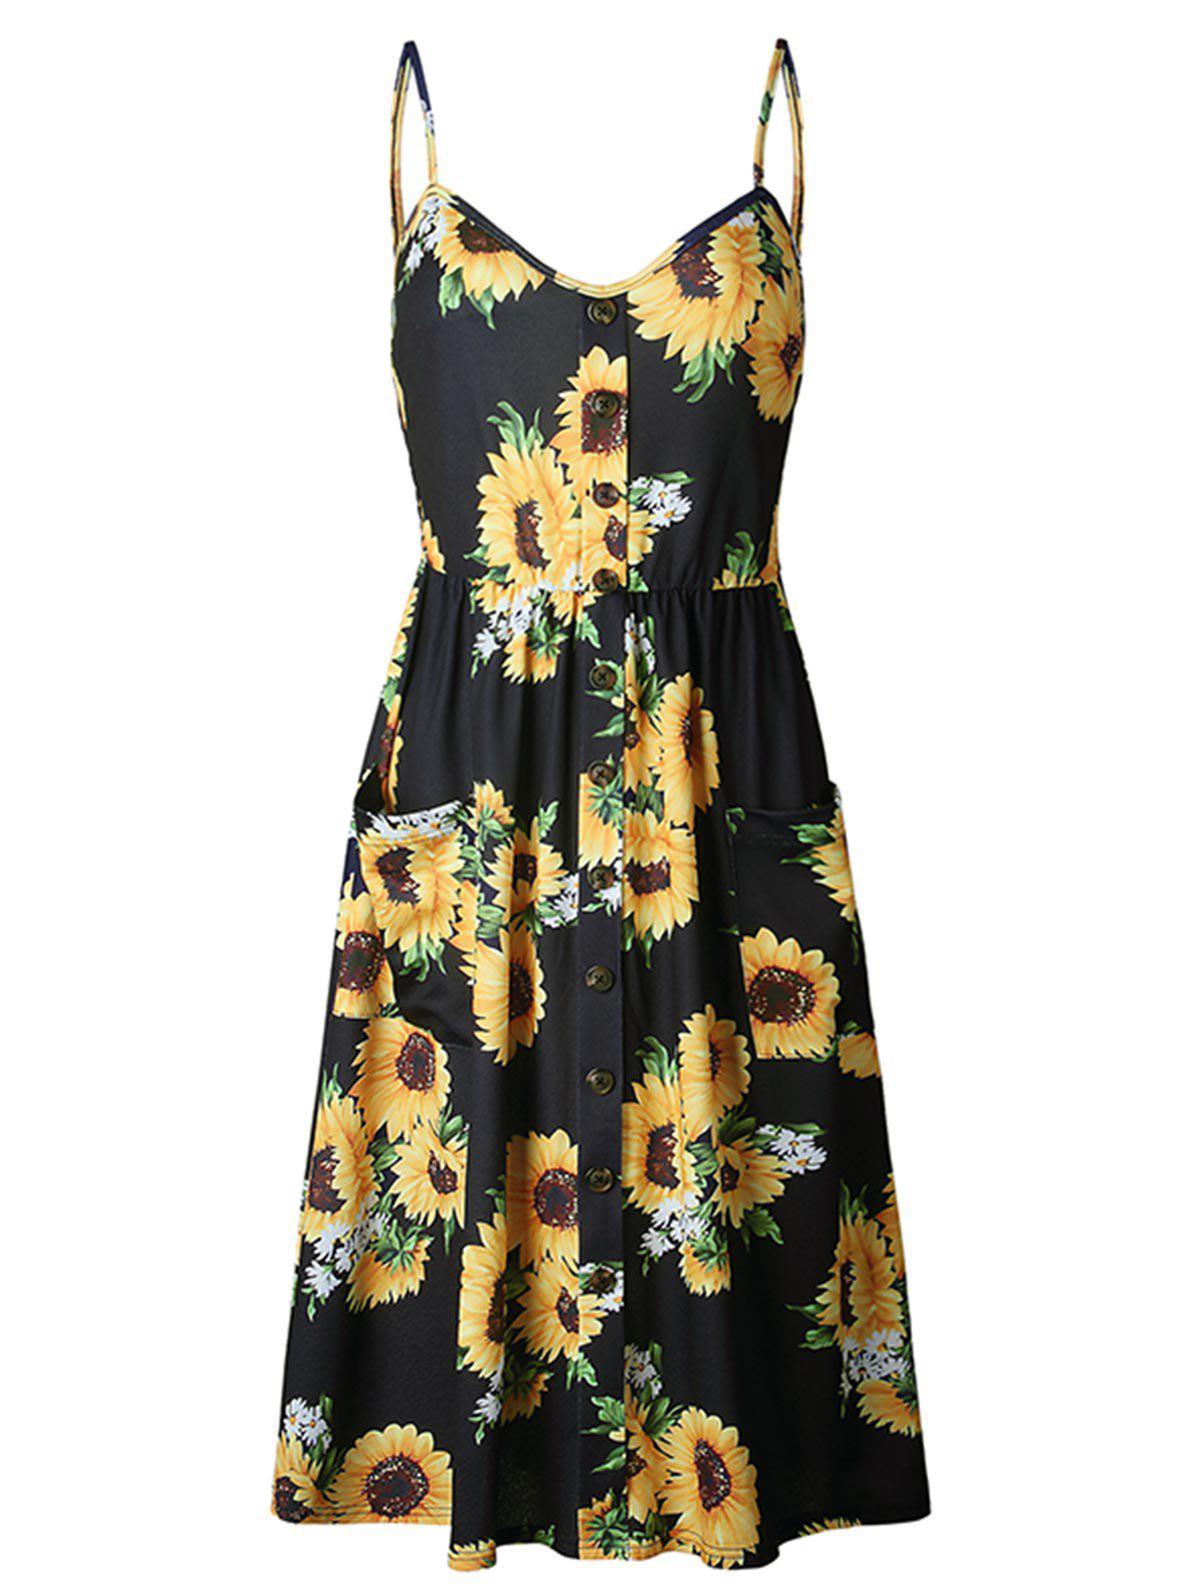 Online Buttoned Sunflower Cami Pocket Dress